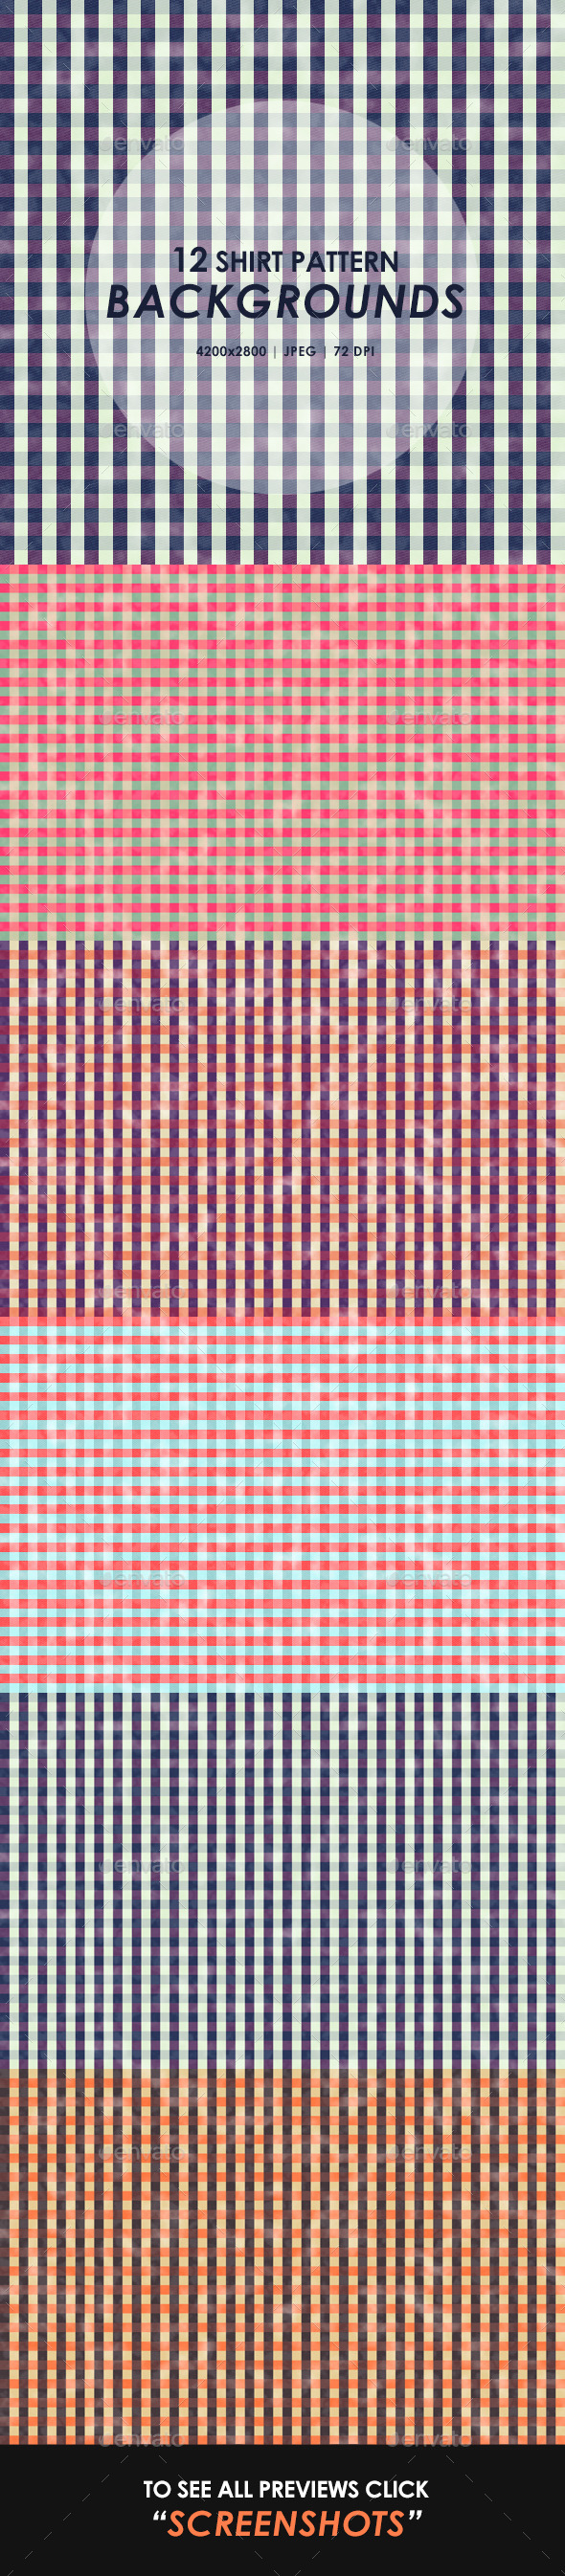 GraphicRiver Shirt Pattern Backgrounds 10285473